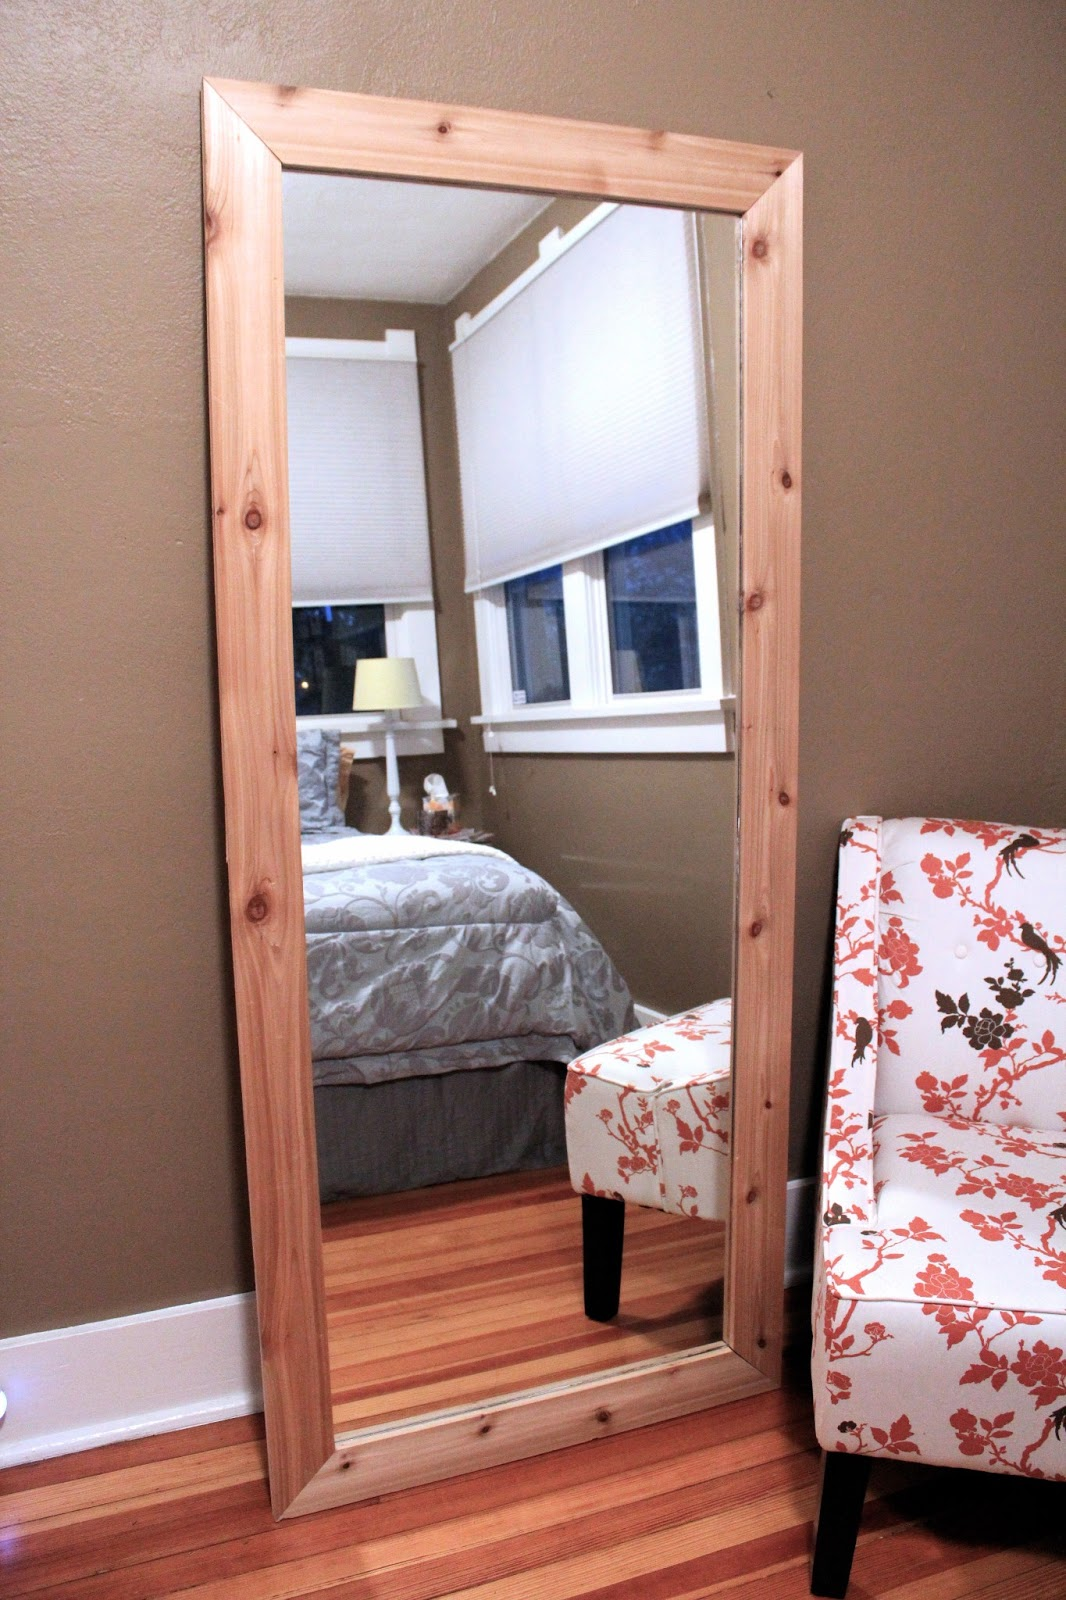 sunlight & sparkle: DIY Leaning Floor Mirror